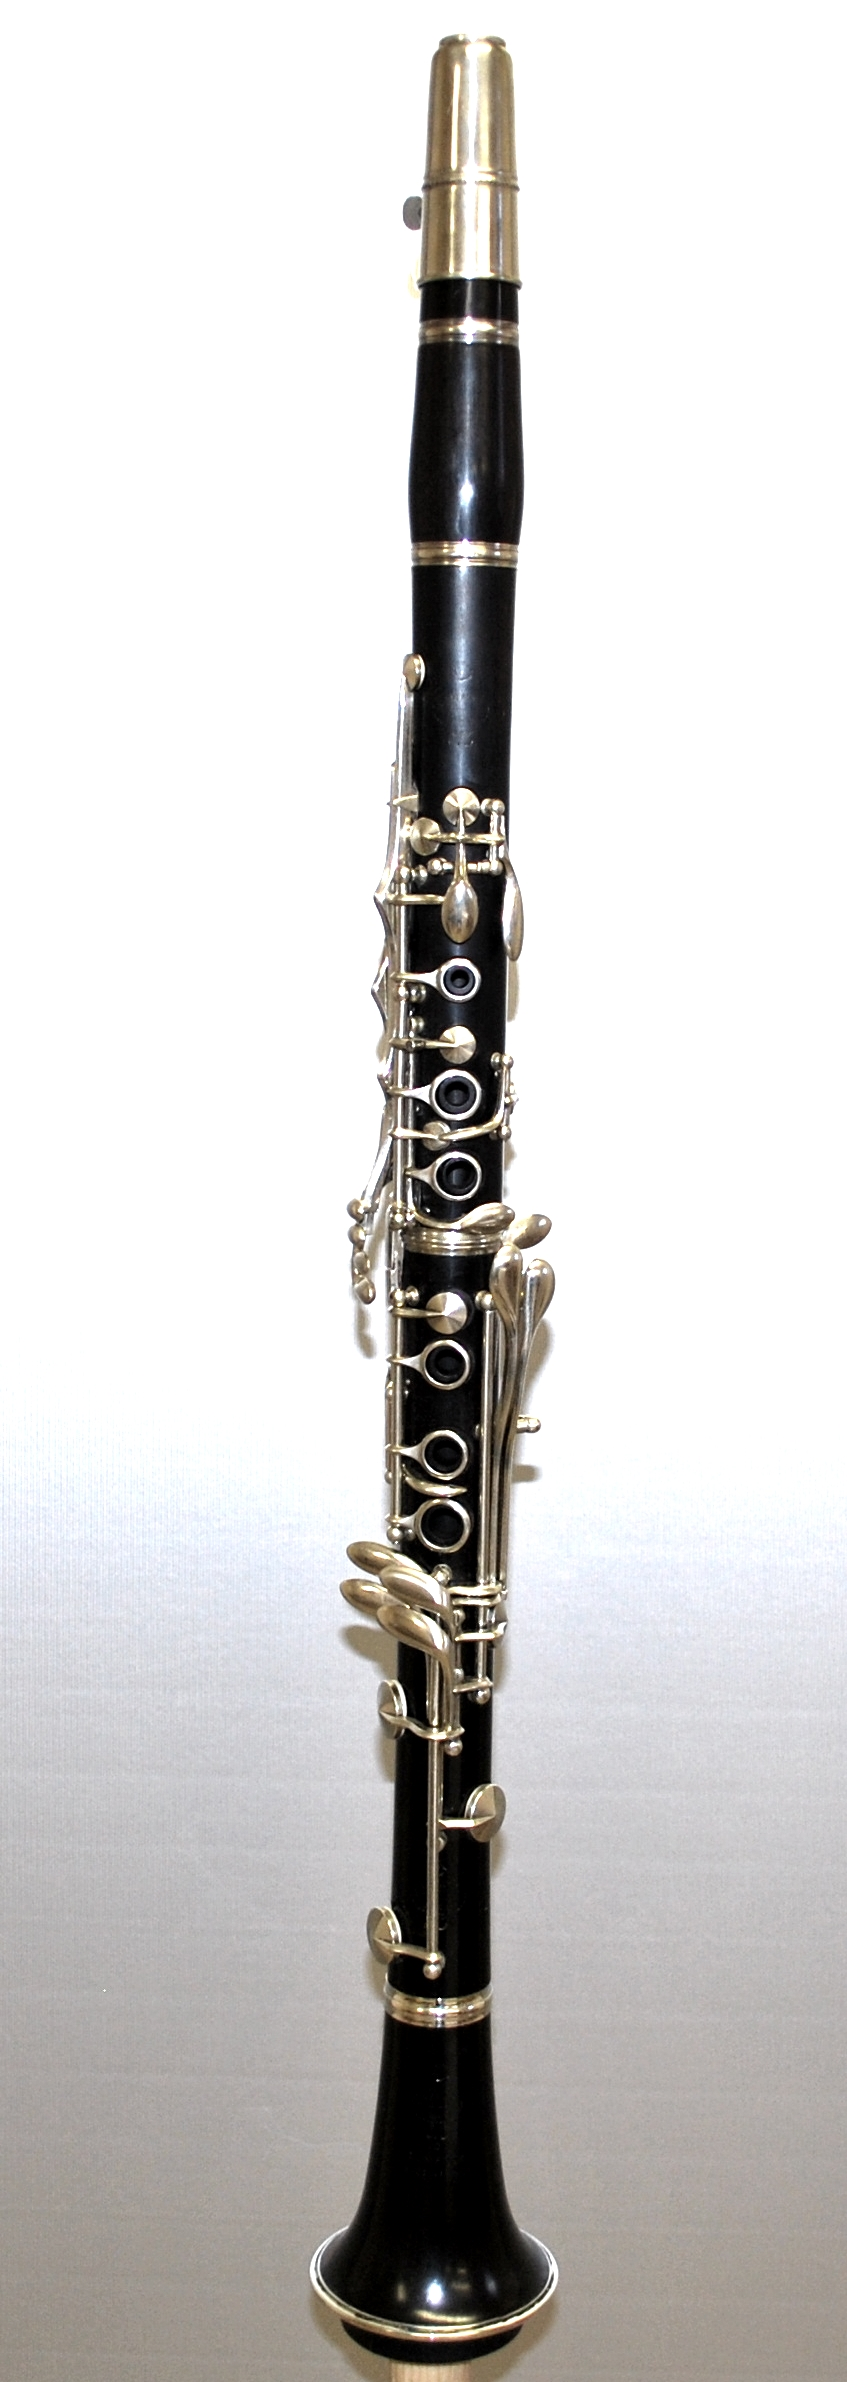 Jean martin clarinets martin freres company for How much is a used yamaha clarinet worth